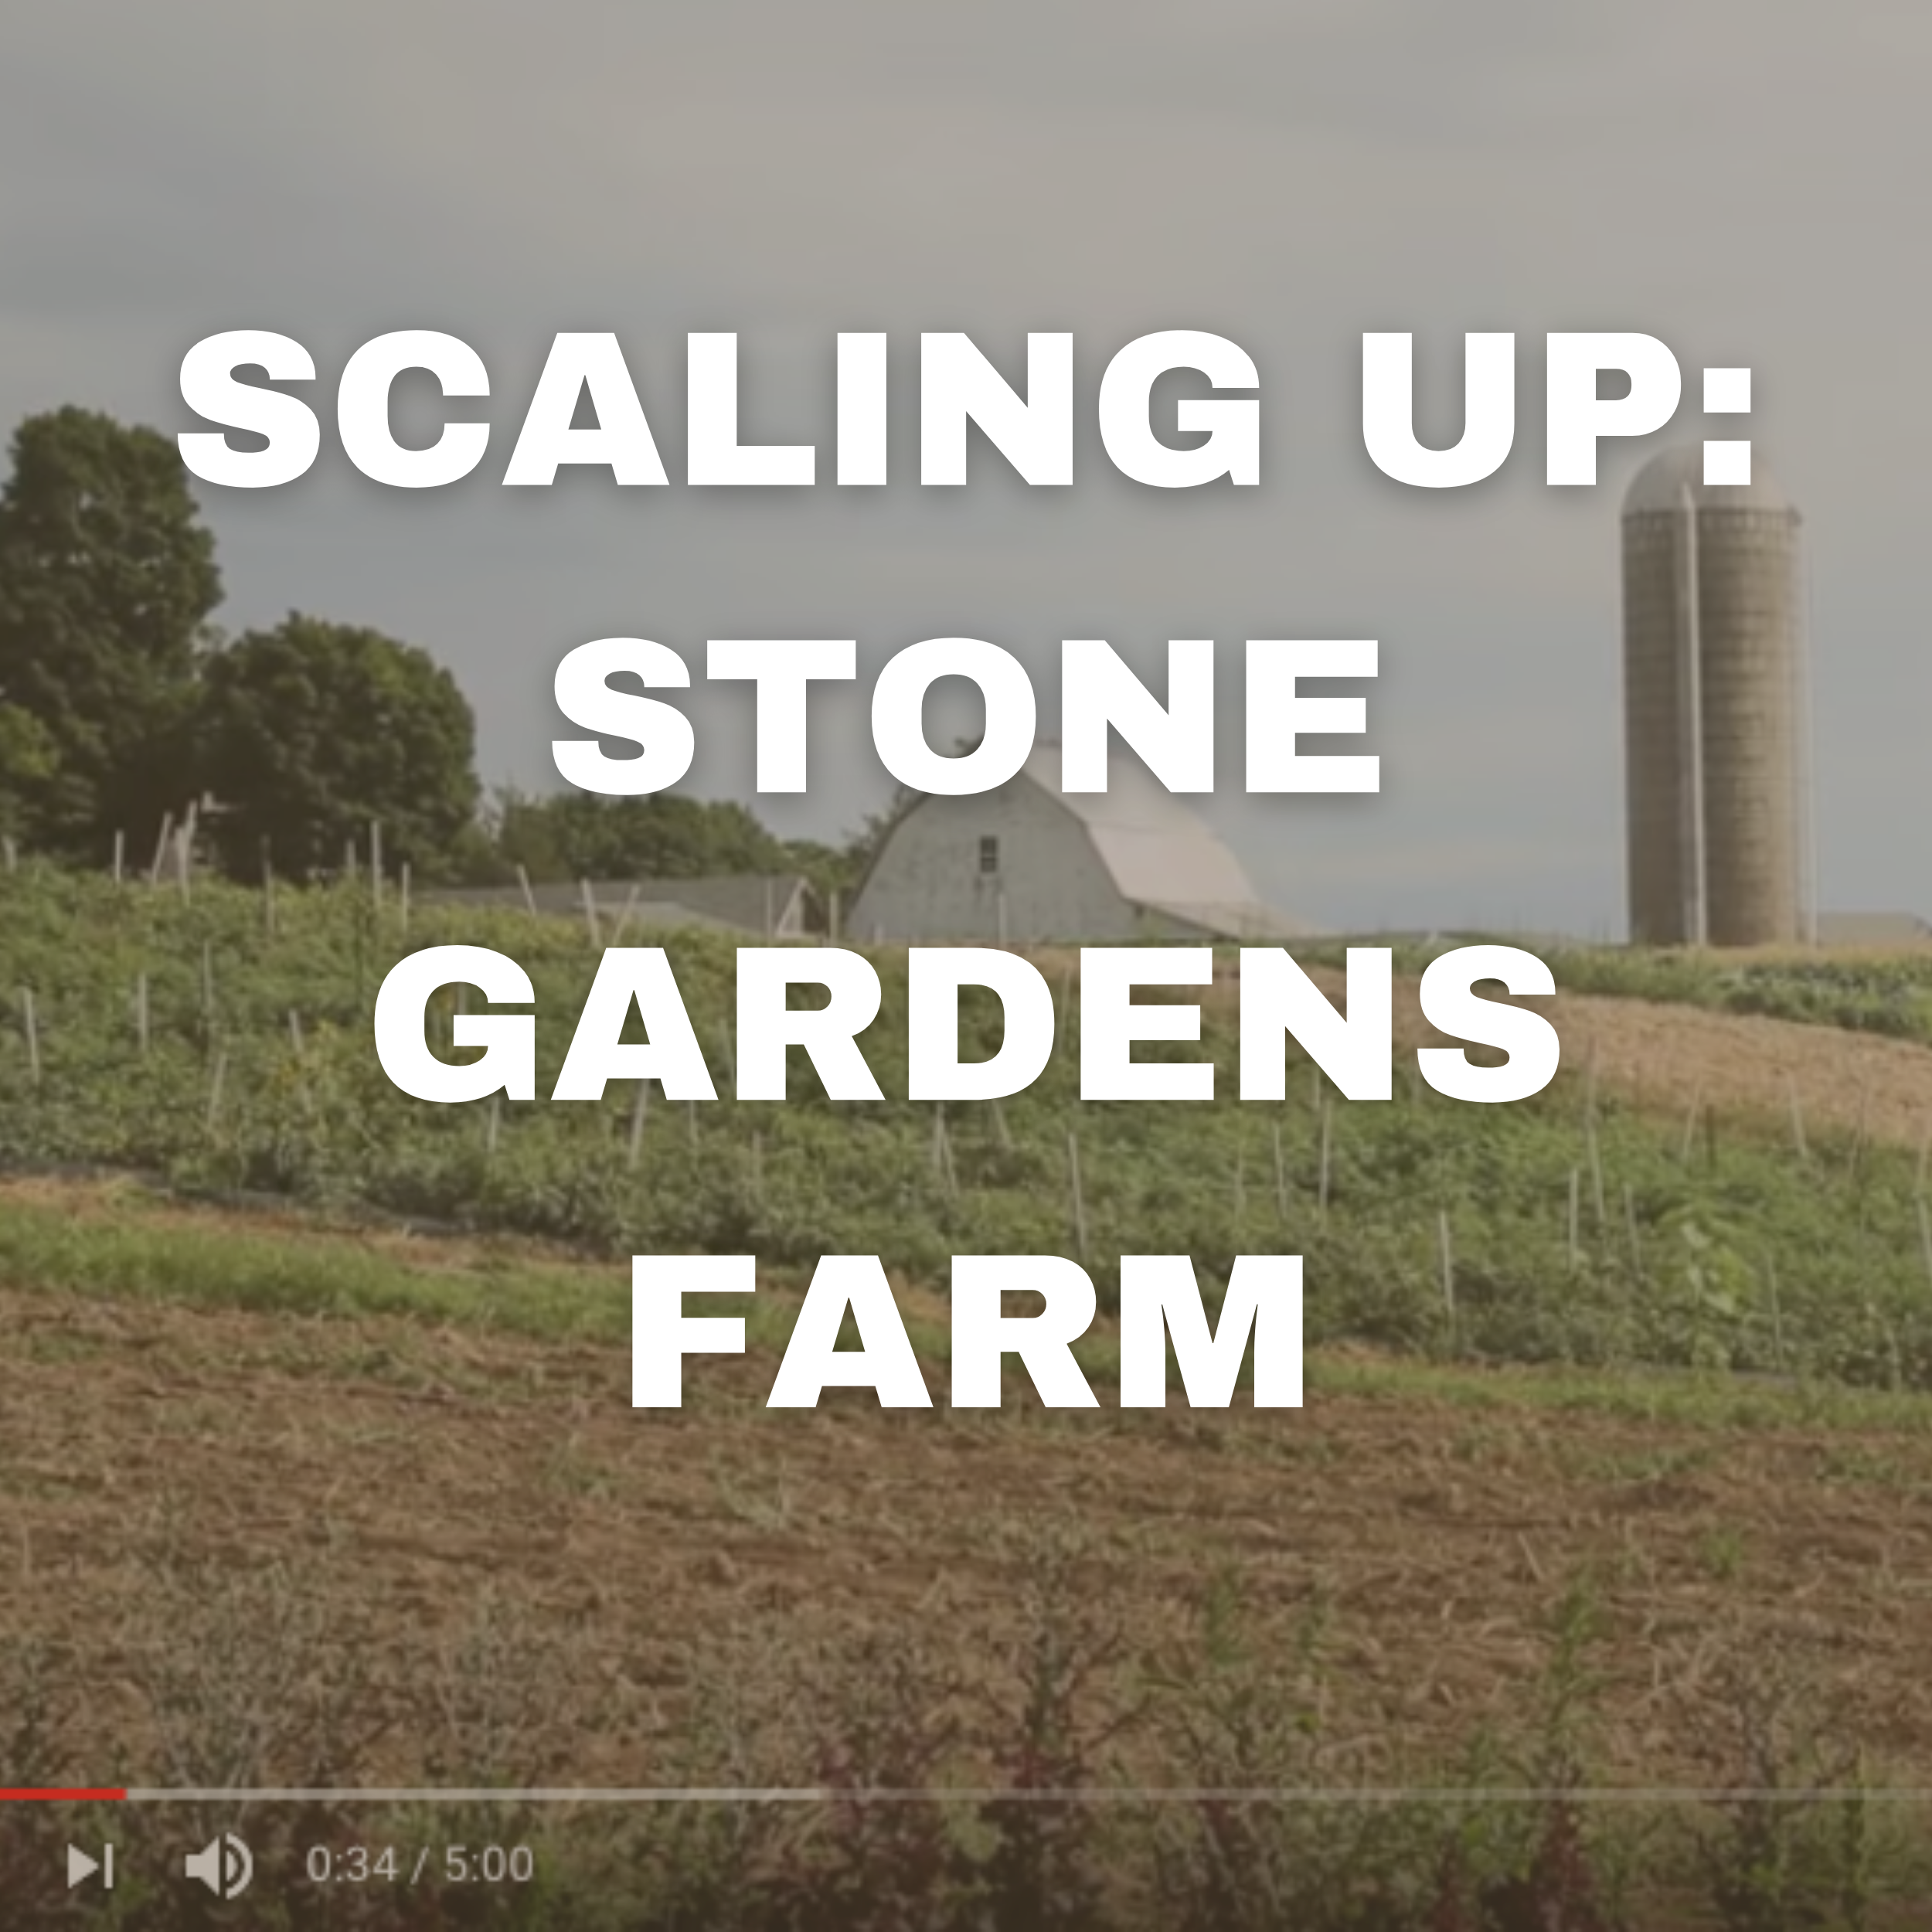 SCALING UP: STONE GARDENS FARM